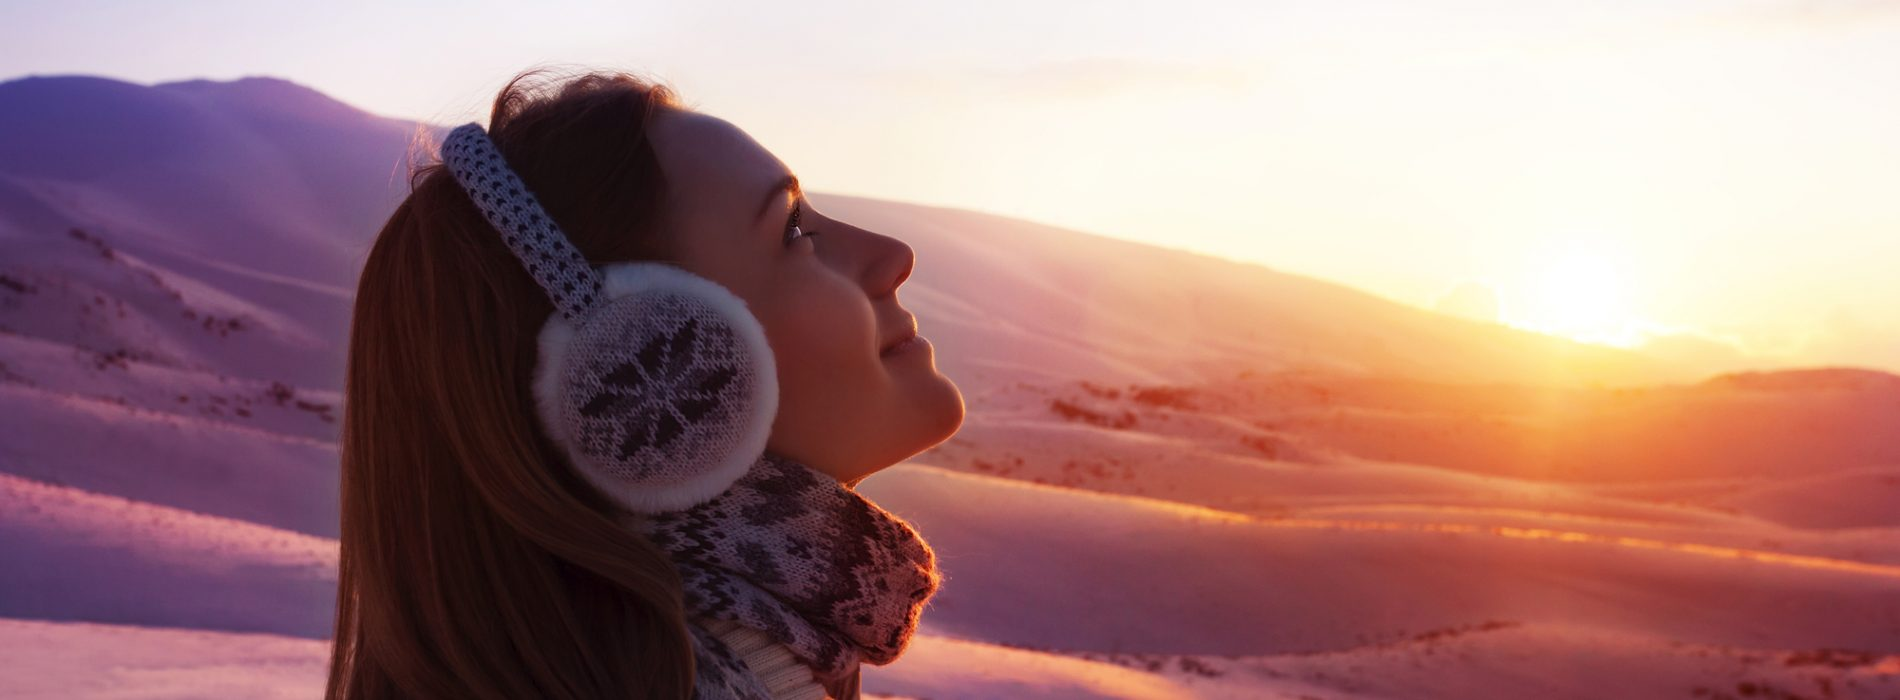 10 Ways to Free your Mind from Negative Thinking